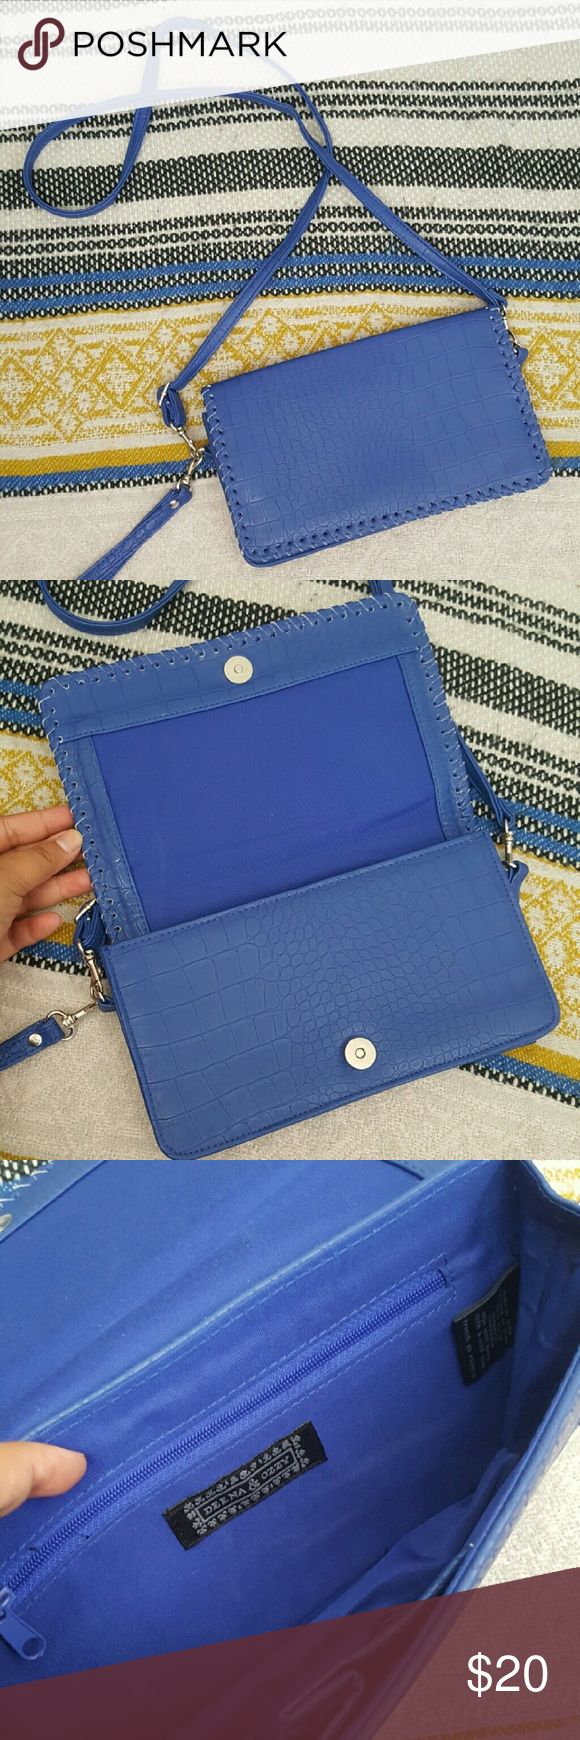 Urban Outfitters Deena & Ozzy blue clutch/wristlet Urban Outfitters Deena & Ozzy cobalt blue clutch/wristlet. Comes with detachable crossbody and wristlet straps. Excellent condition. Only used on one occasion. No trades. If you BUNDLE 3 items, you get 15% off! Urban Outfitters Bags Clutches & Wristlets